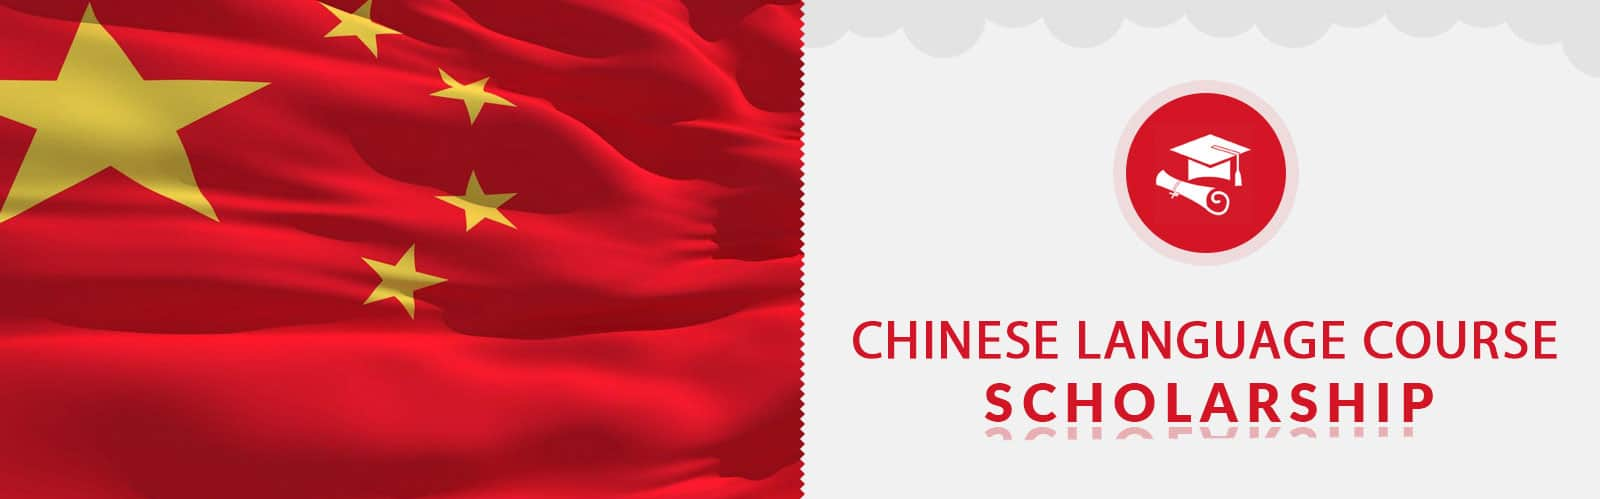 Chinese Language Scholarships